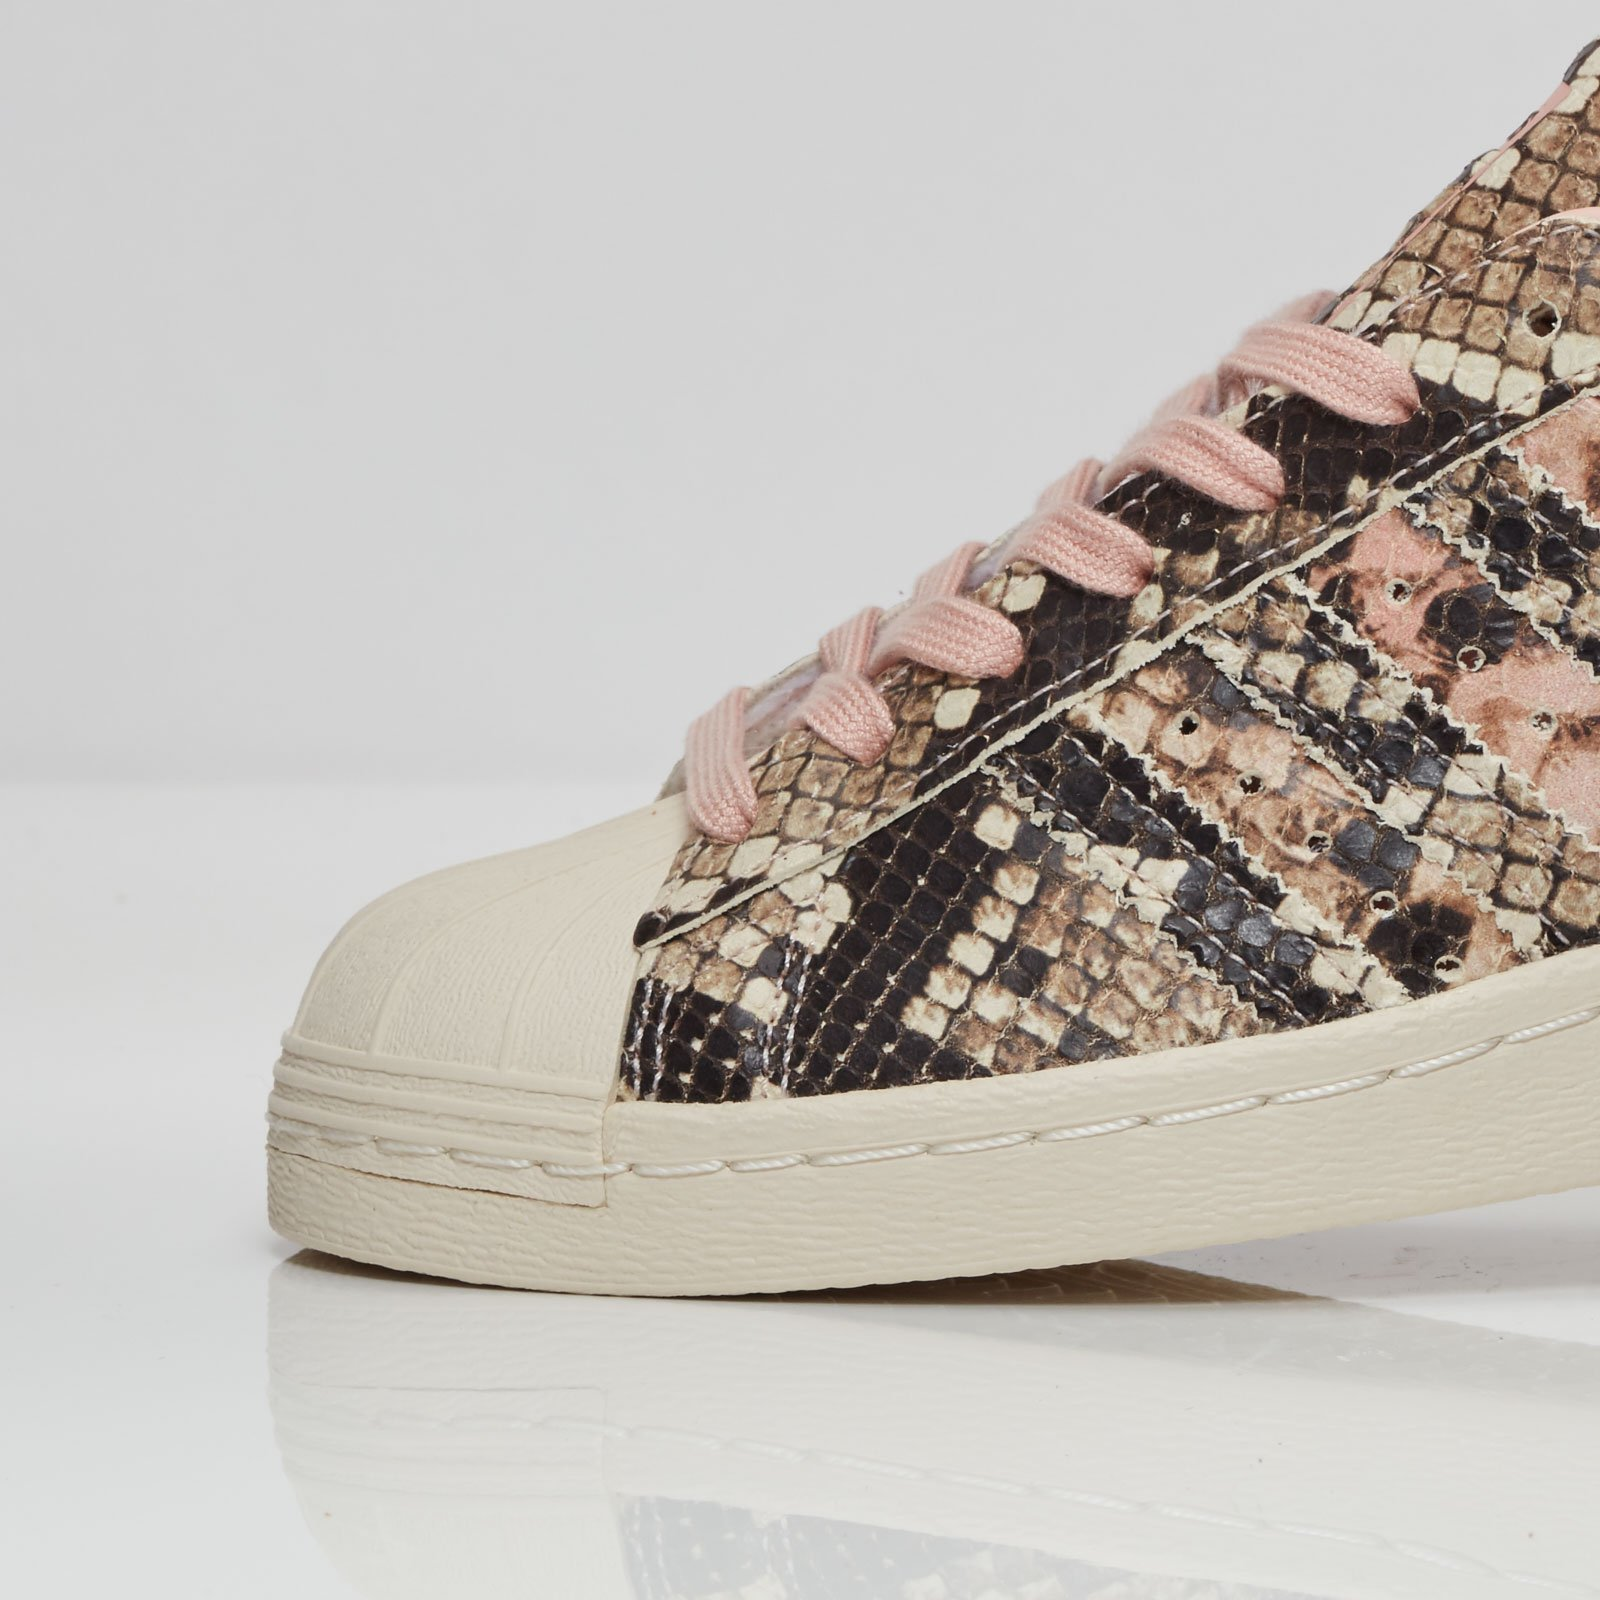 reputable site 7f9d6 29149 adidas Superstar 80s W - S76419 - Sneakersnstuff | sneakers ...